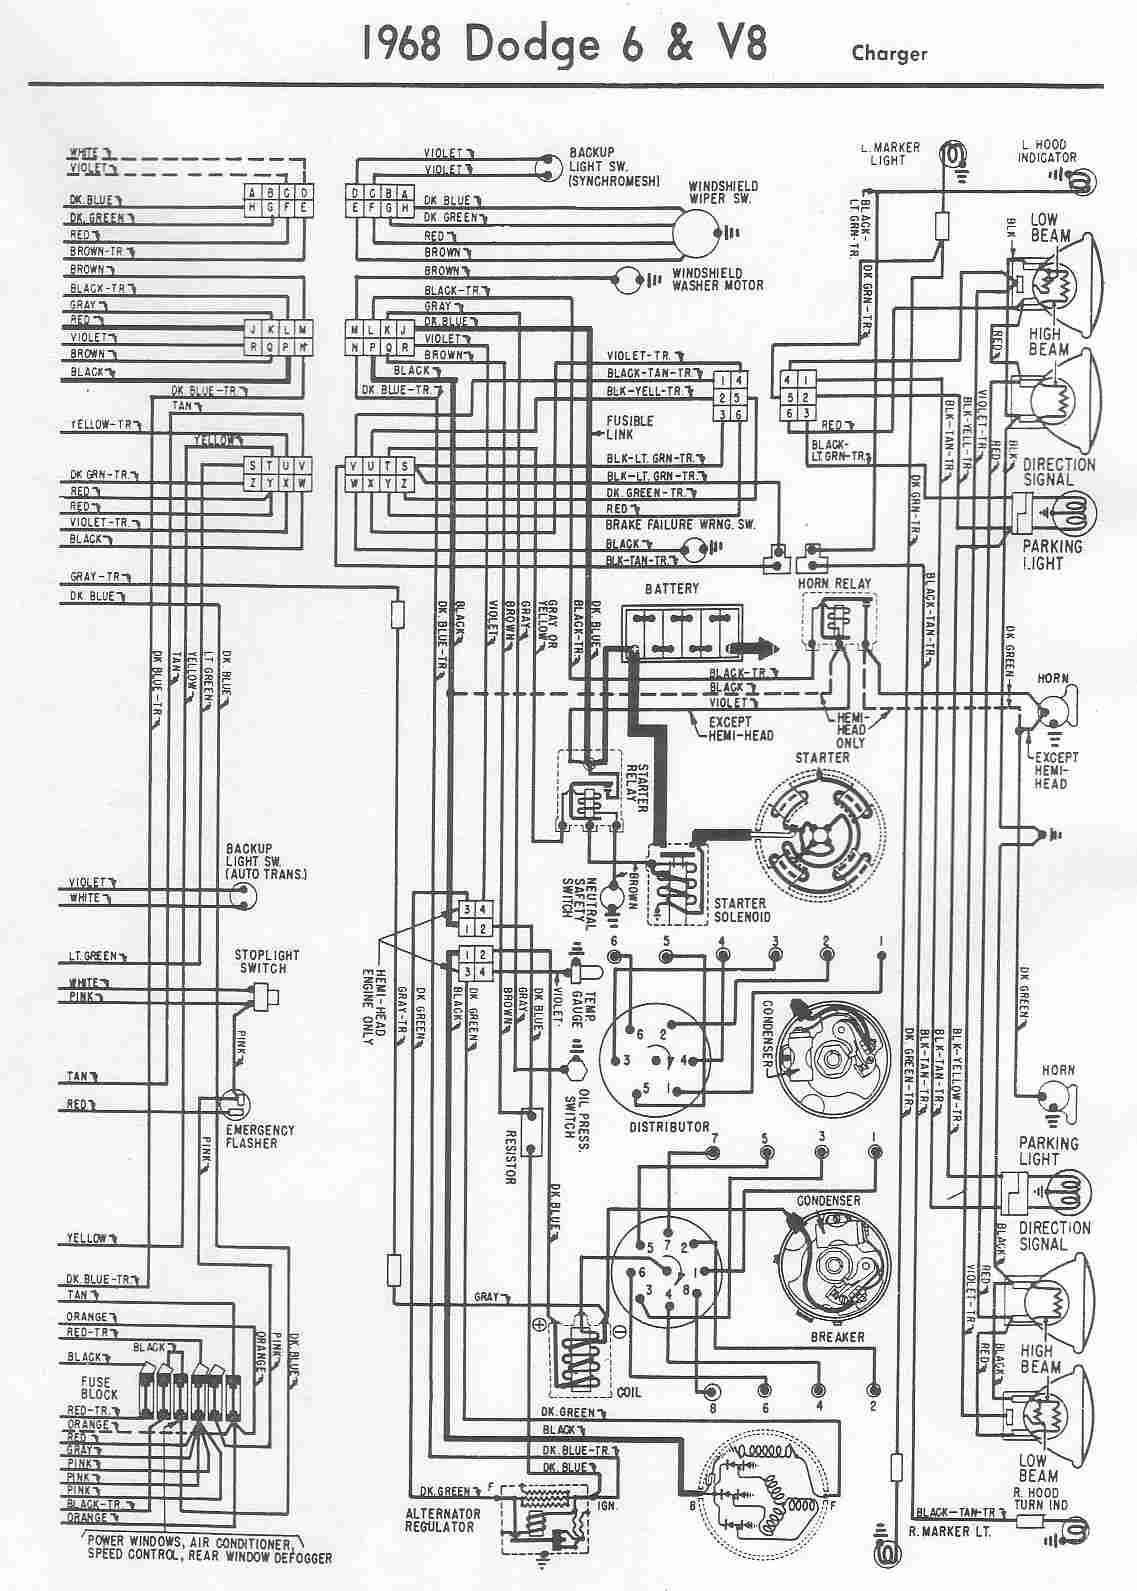 Mercedes Benz Transmissions Wiring Diagram Fuse Box 2204 Battery For Wire Data Schema 68 Diagrams Free Block And Schematic U2022 Rh Lazysupply Co